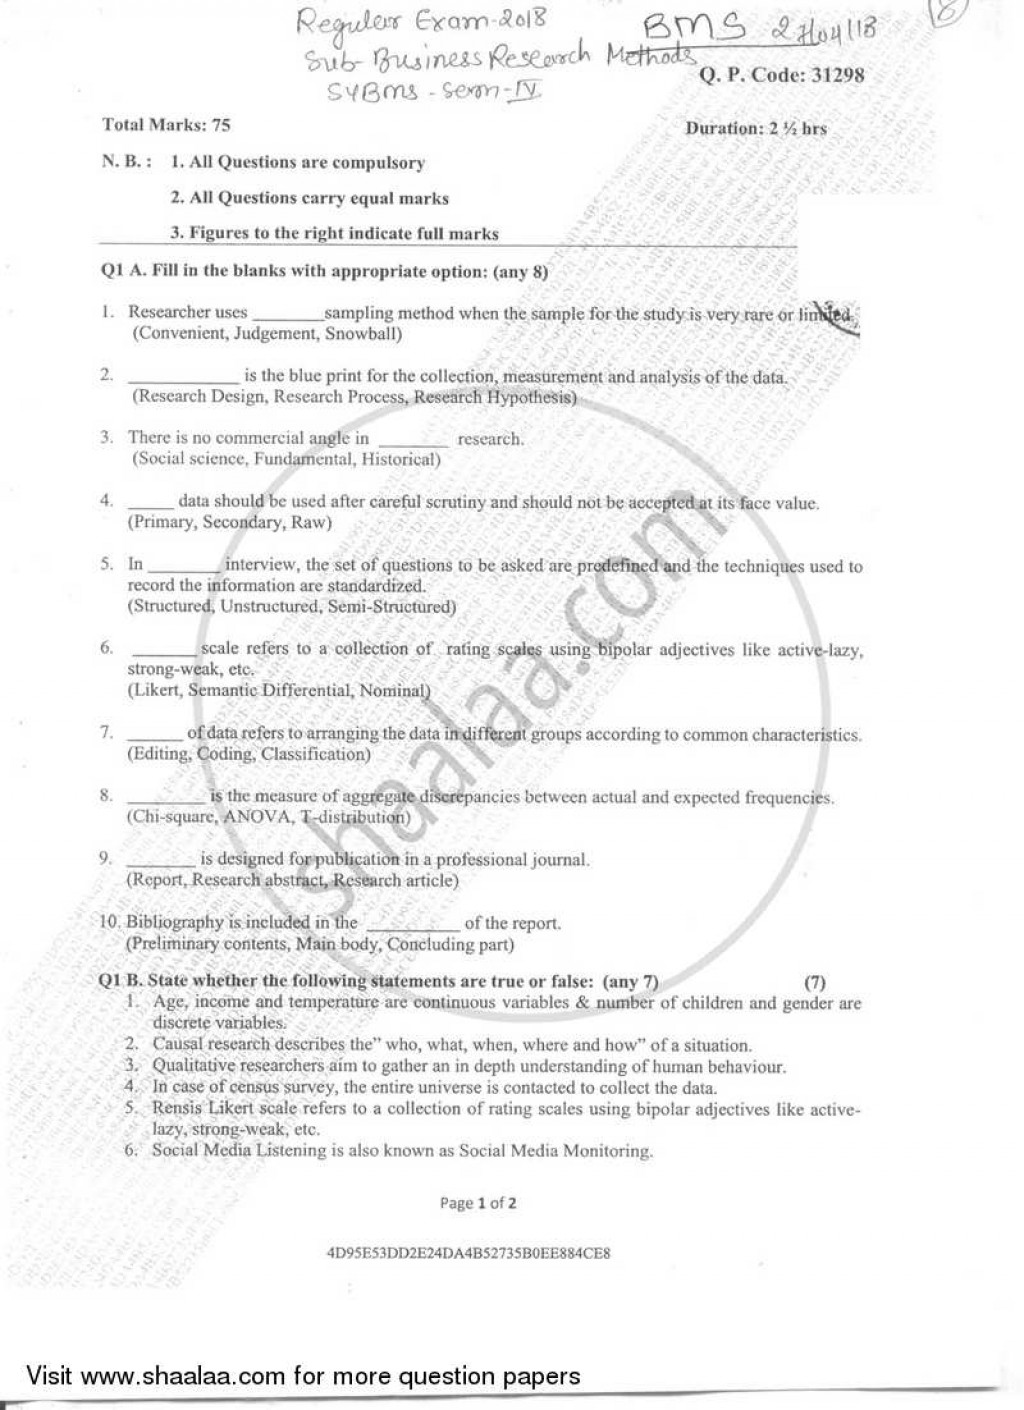 001 Business Research Methods Question Paper University Of Mumbai Bachelor Bms Semester 2018 273366f2e5ebf44fa9f053e9300512123 Stupendous 2017 Large